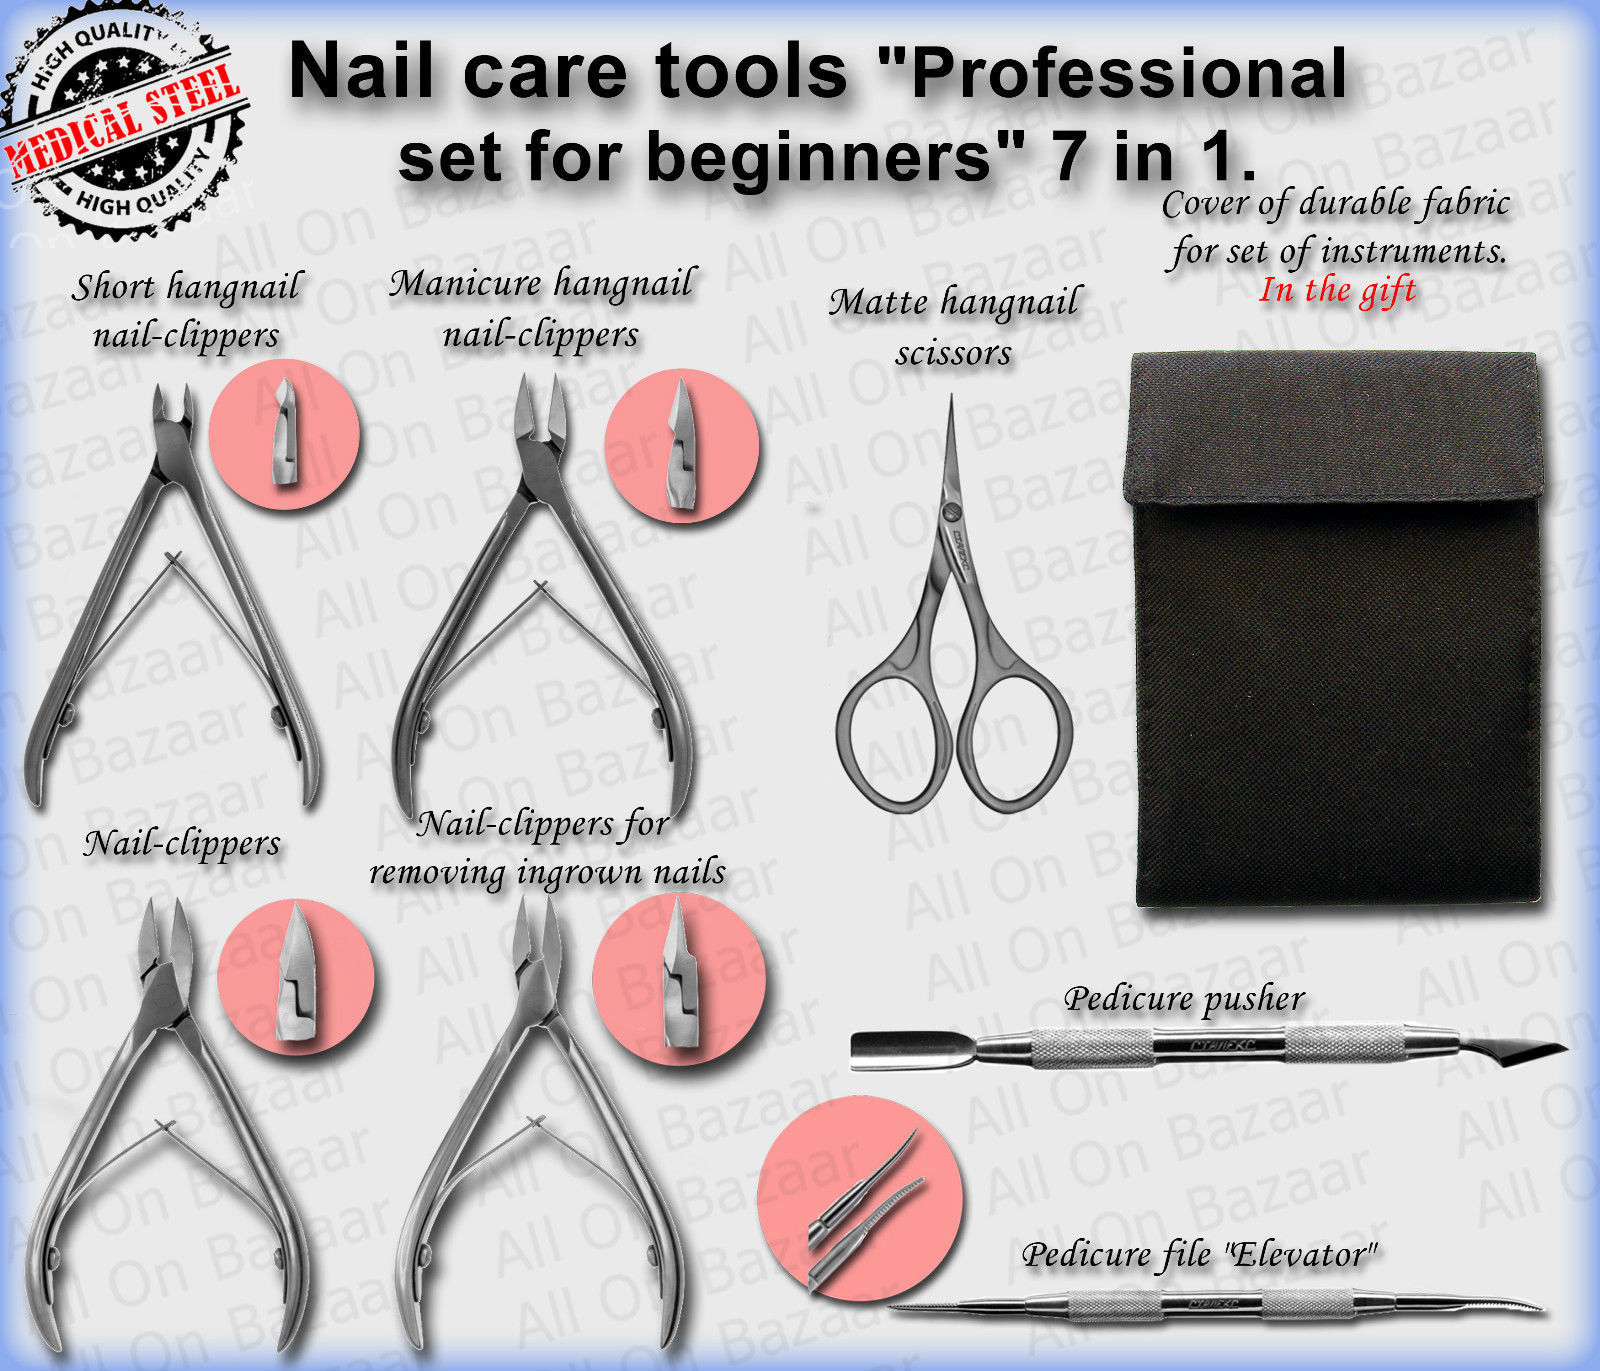 """Professional-quality tools for nail care """"Professional set for beginners"""" 7 in 1 - $89.10"""